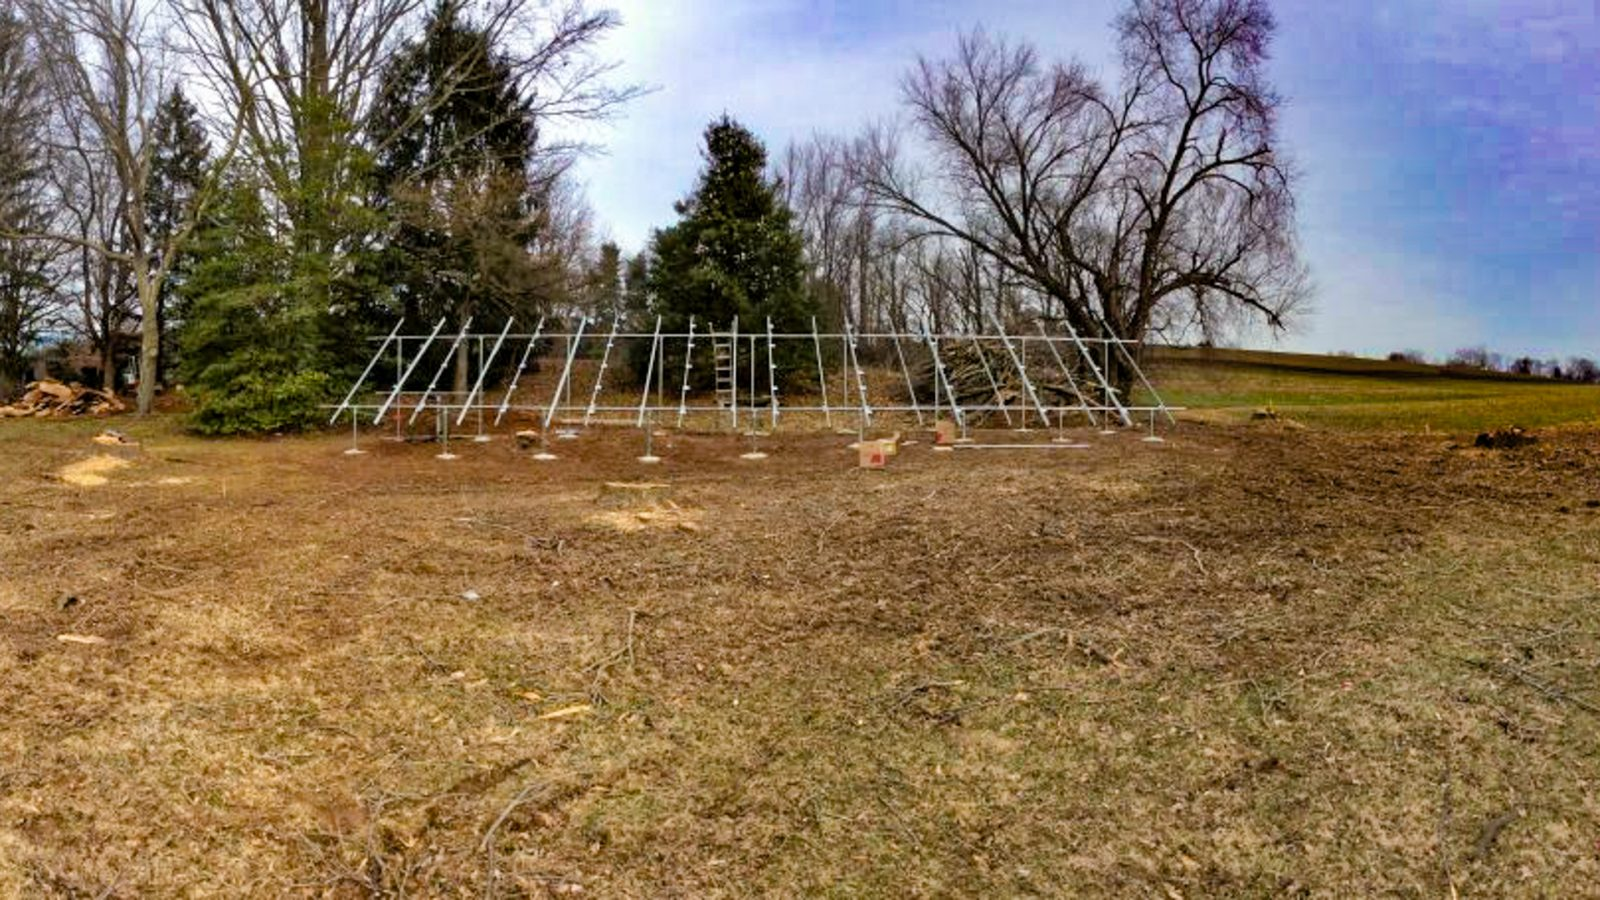 The solar installation for a net zero building in lancaster pa.